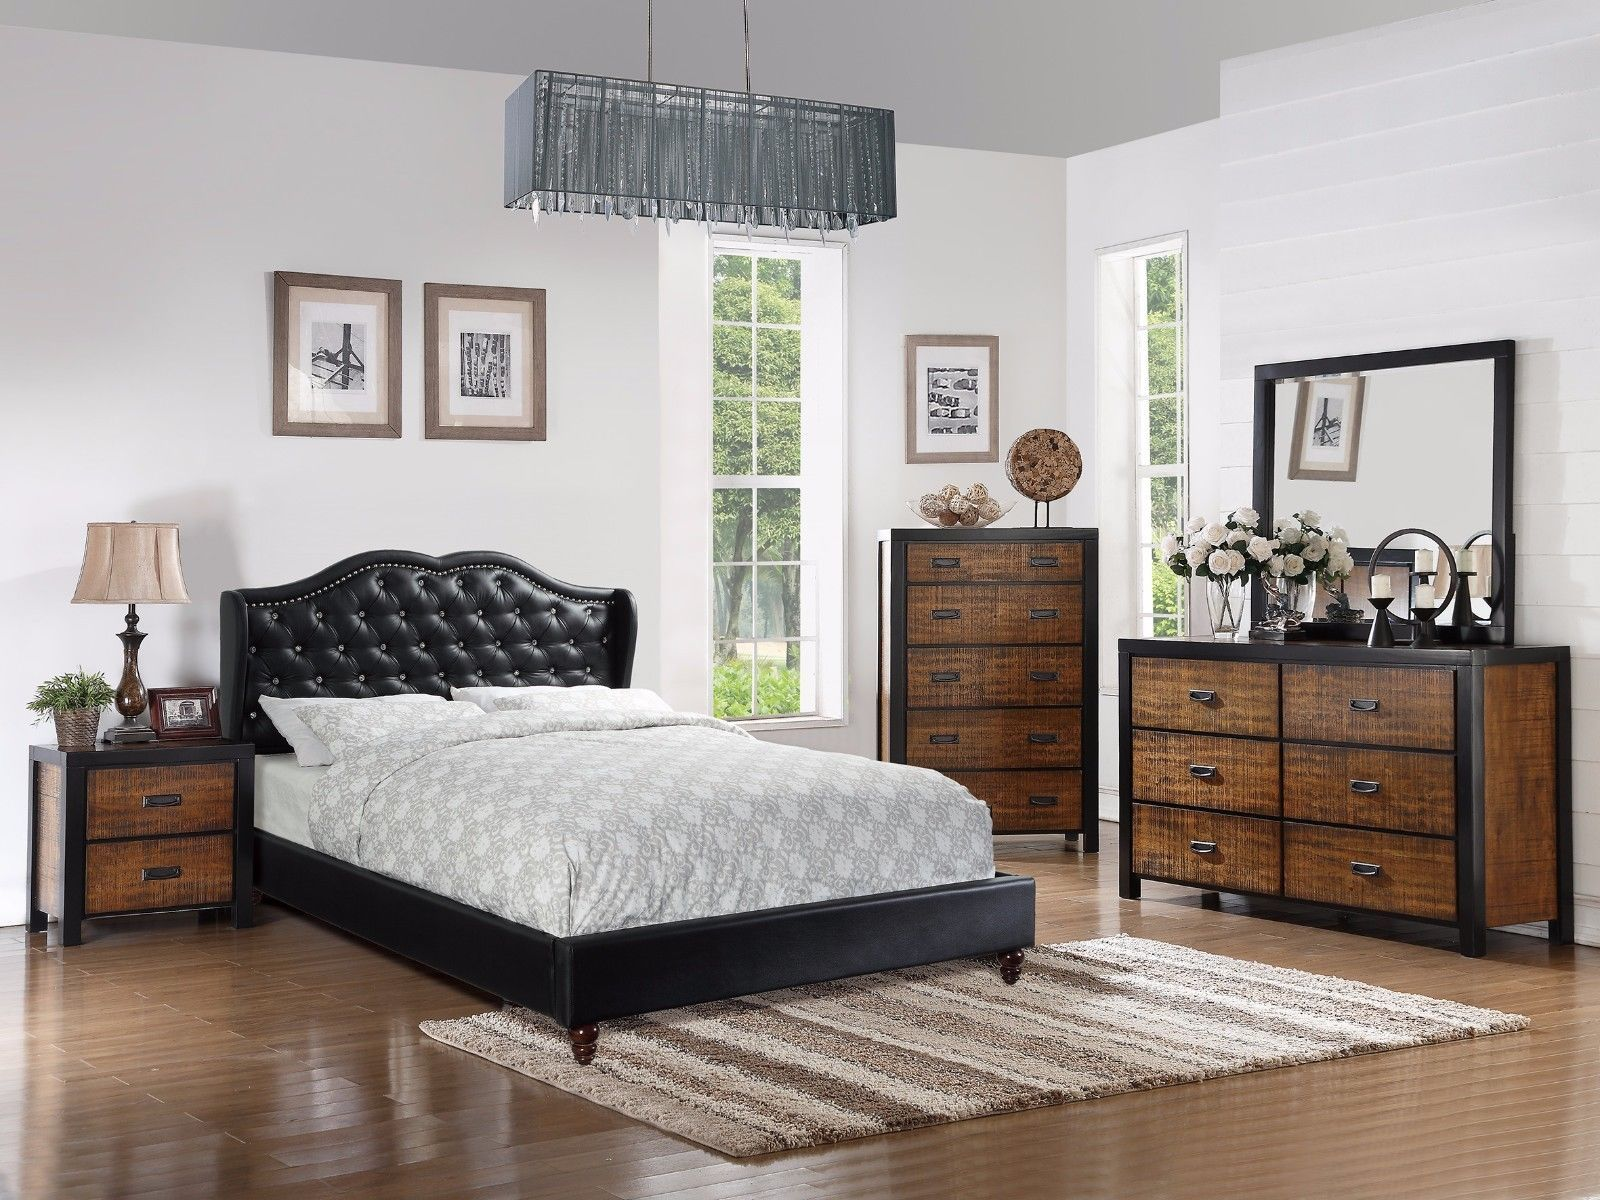 Pin by Last Reviews on Reviews Black bedroom furniture